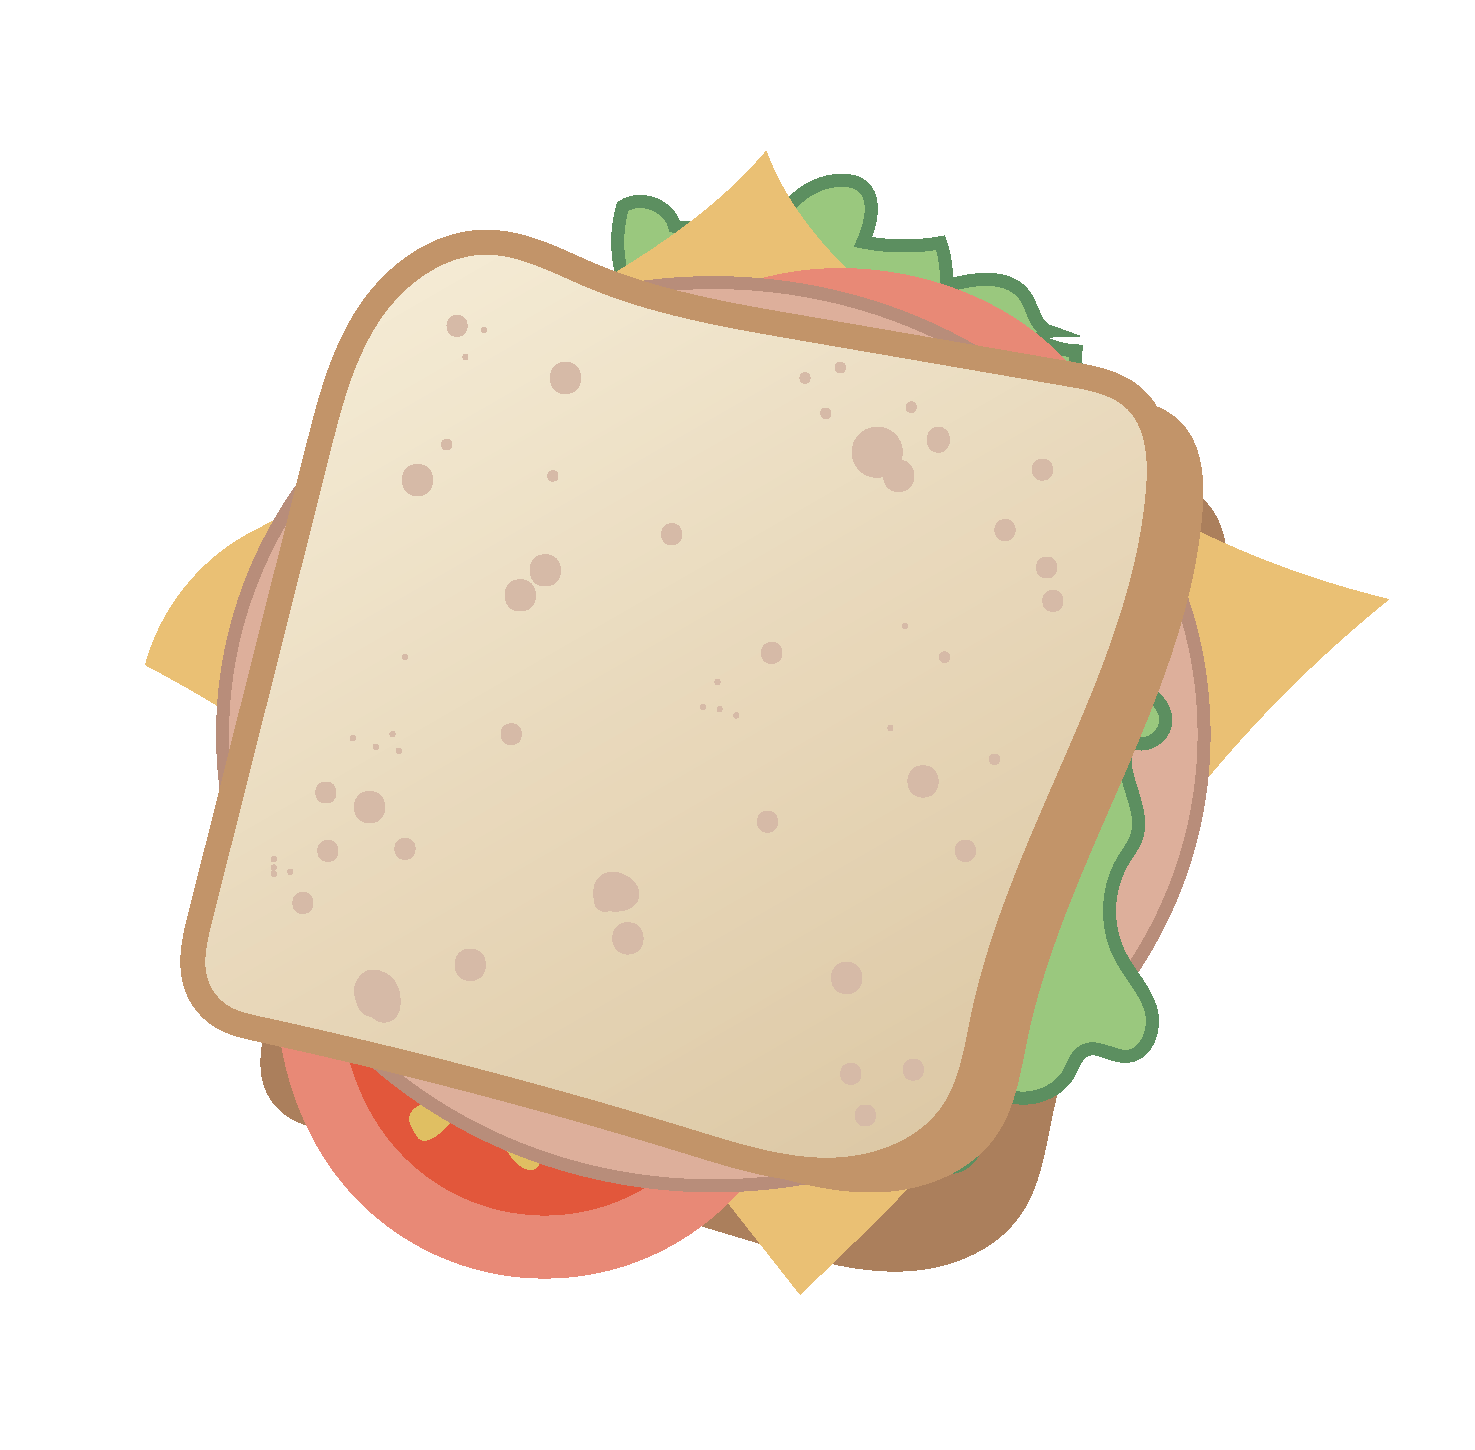 Sandwich Graphic